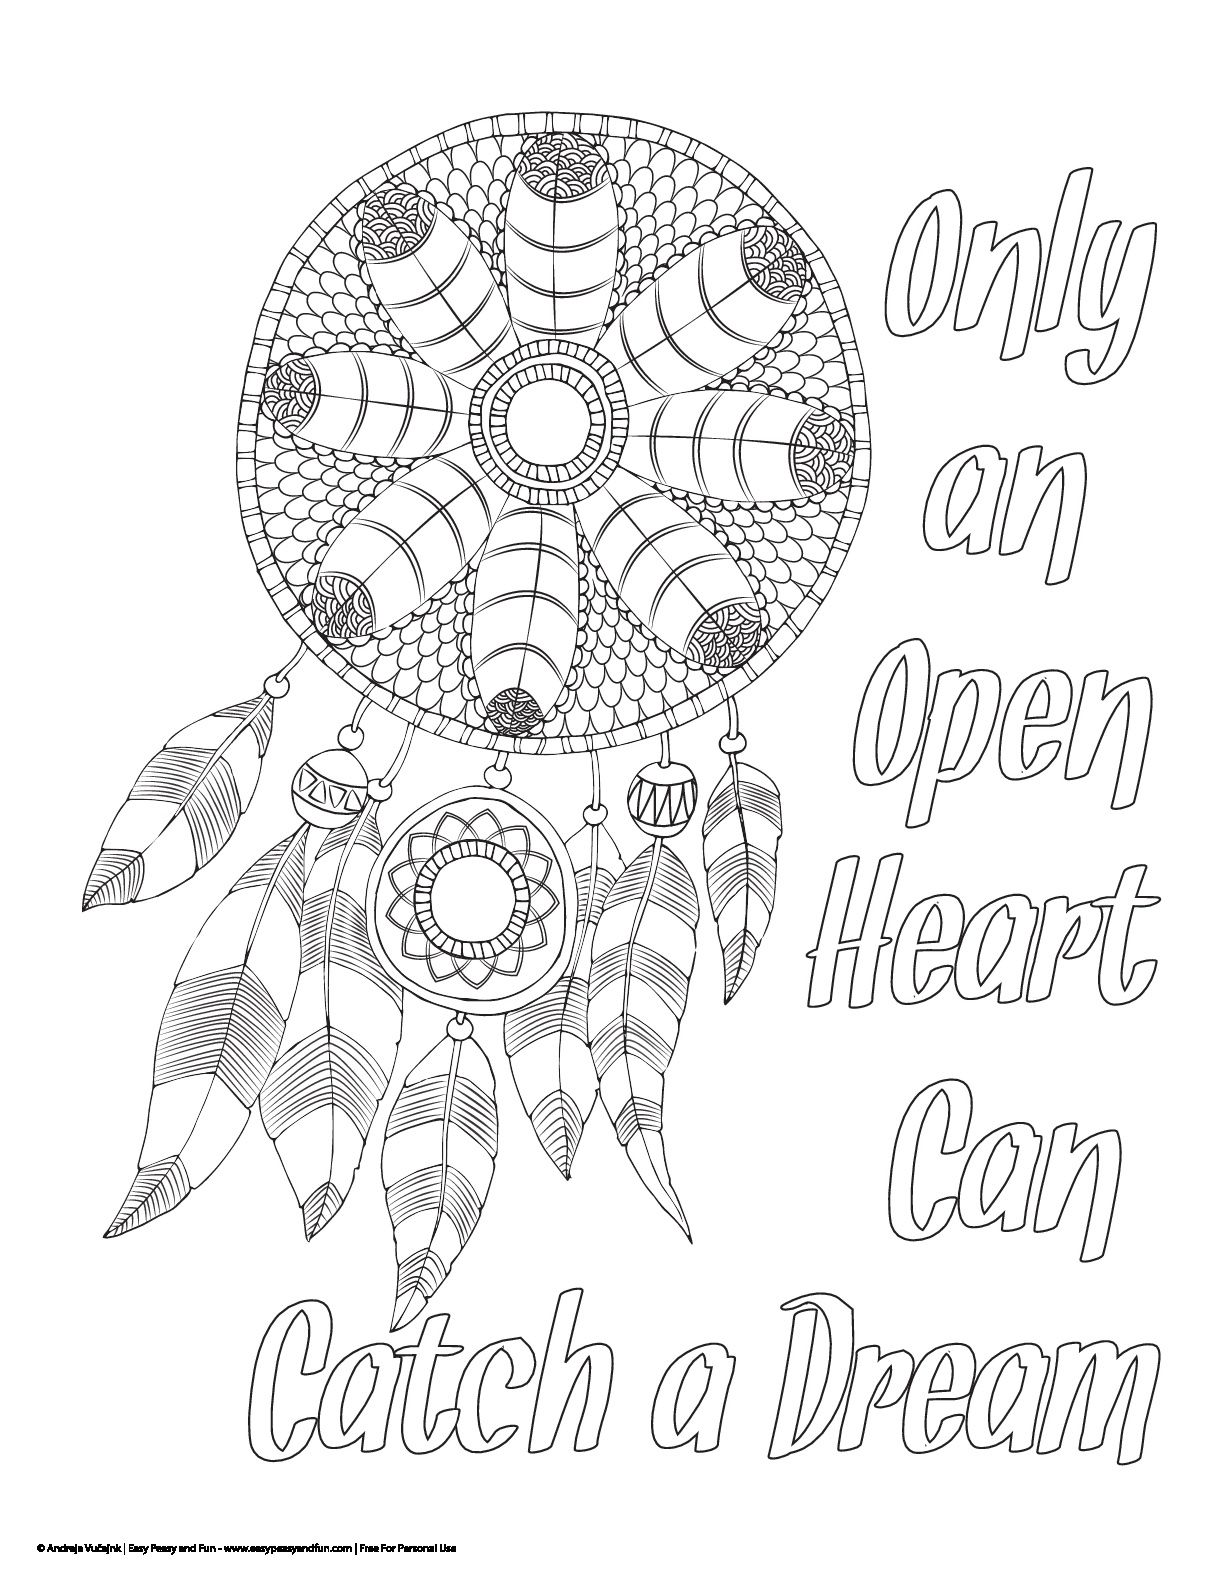 Pin By Carla 87 On Coloring Anti Stress Raskraski Antistress Quote Coloring Pages Inspirational Quotes Coloring Dream Catcher Coloring Pages